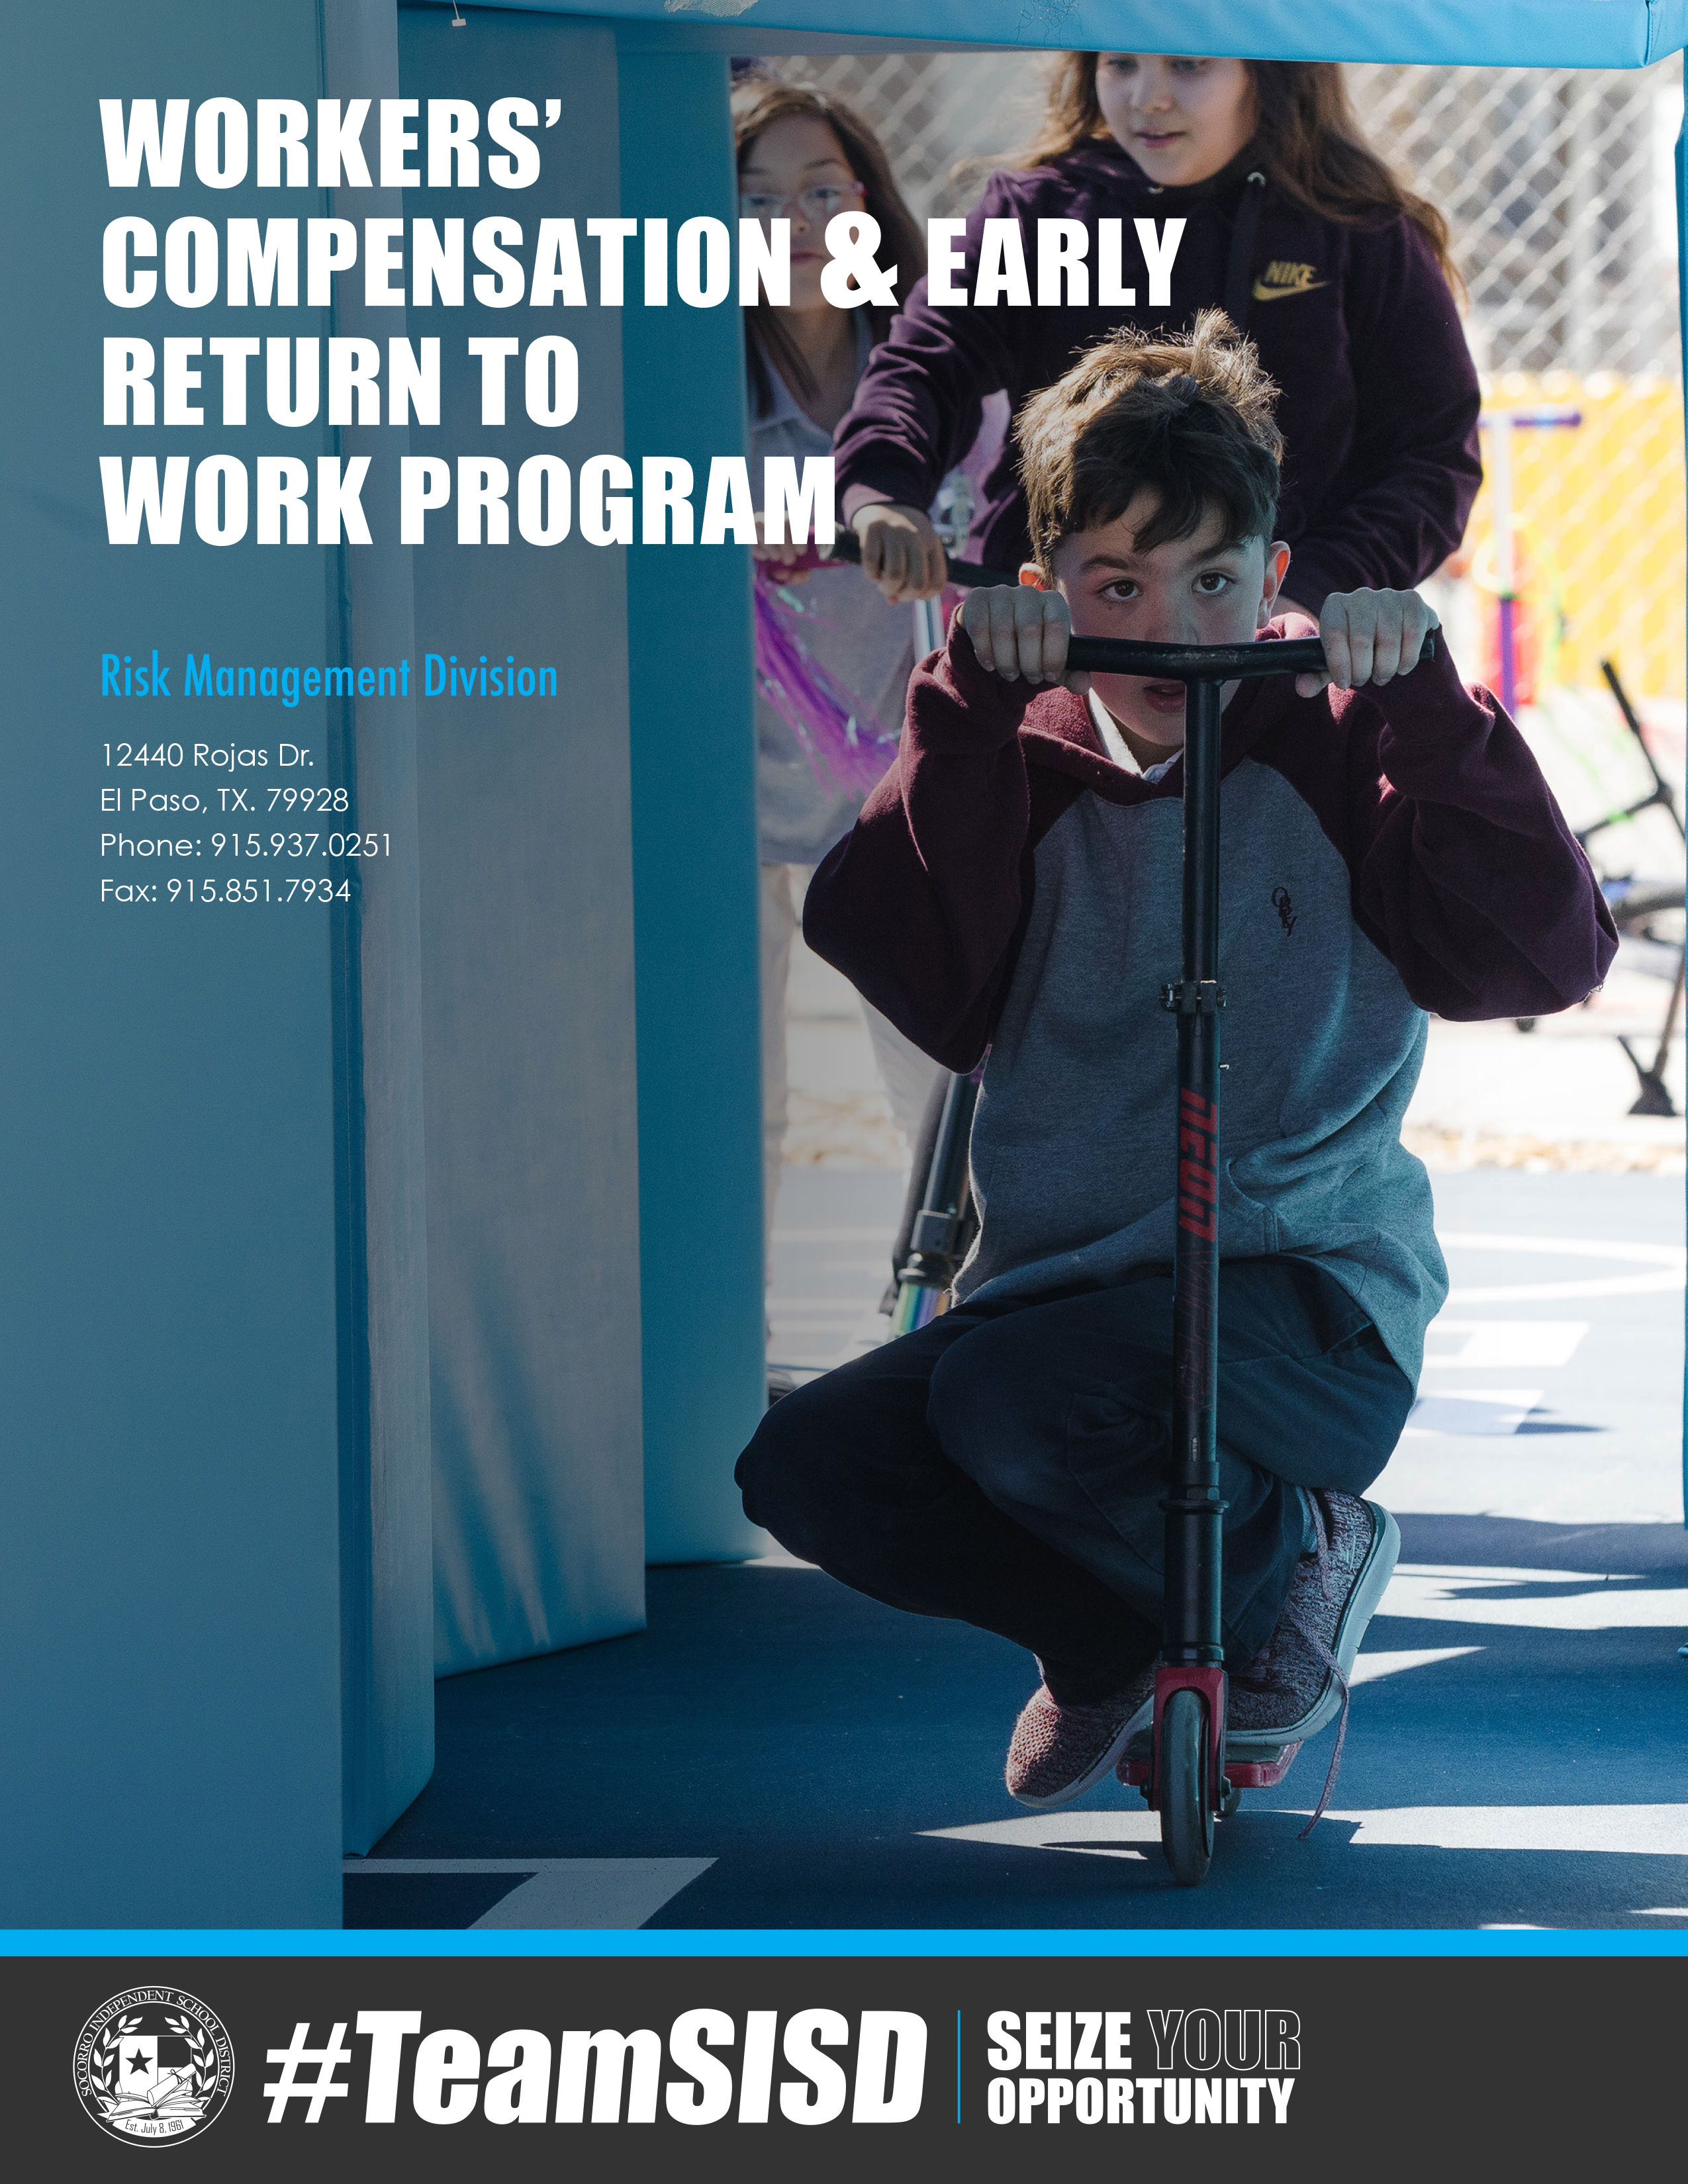 Workers Compensation and Early Return to Work Program Guide